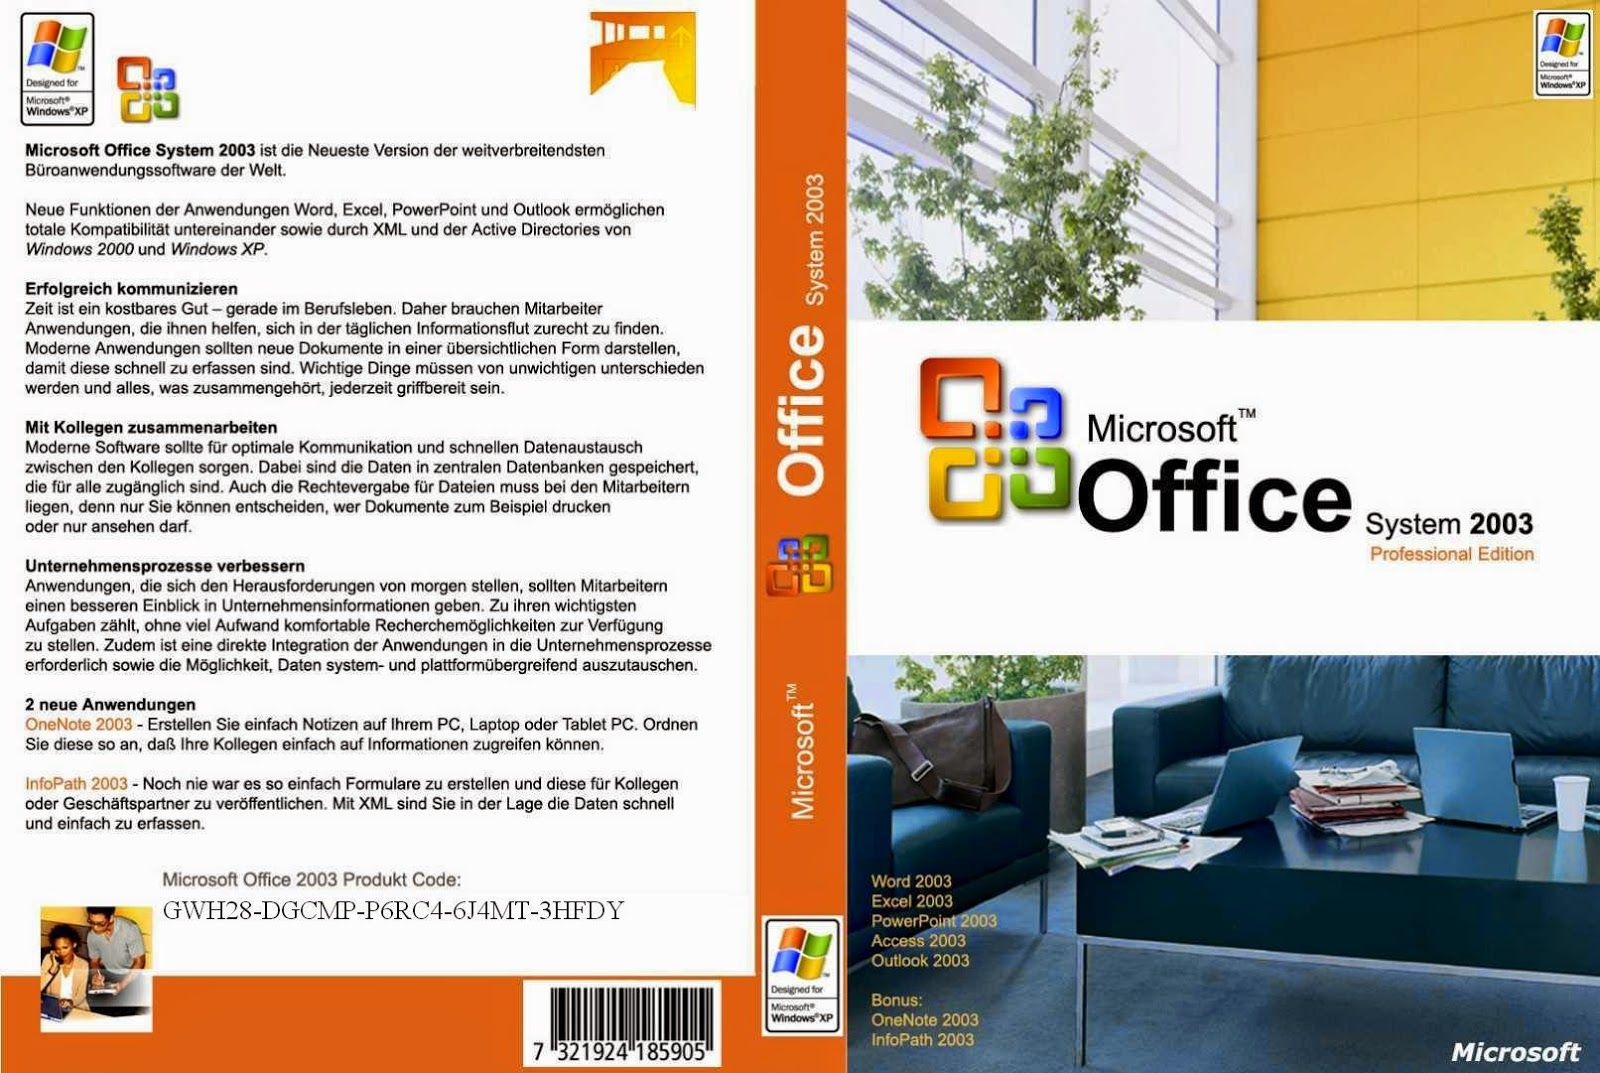 download microsoft office 2003 professional edition full version free